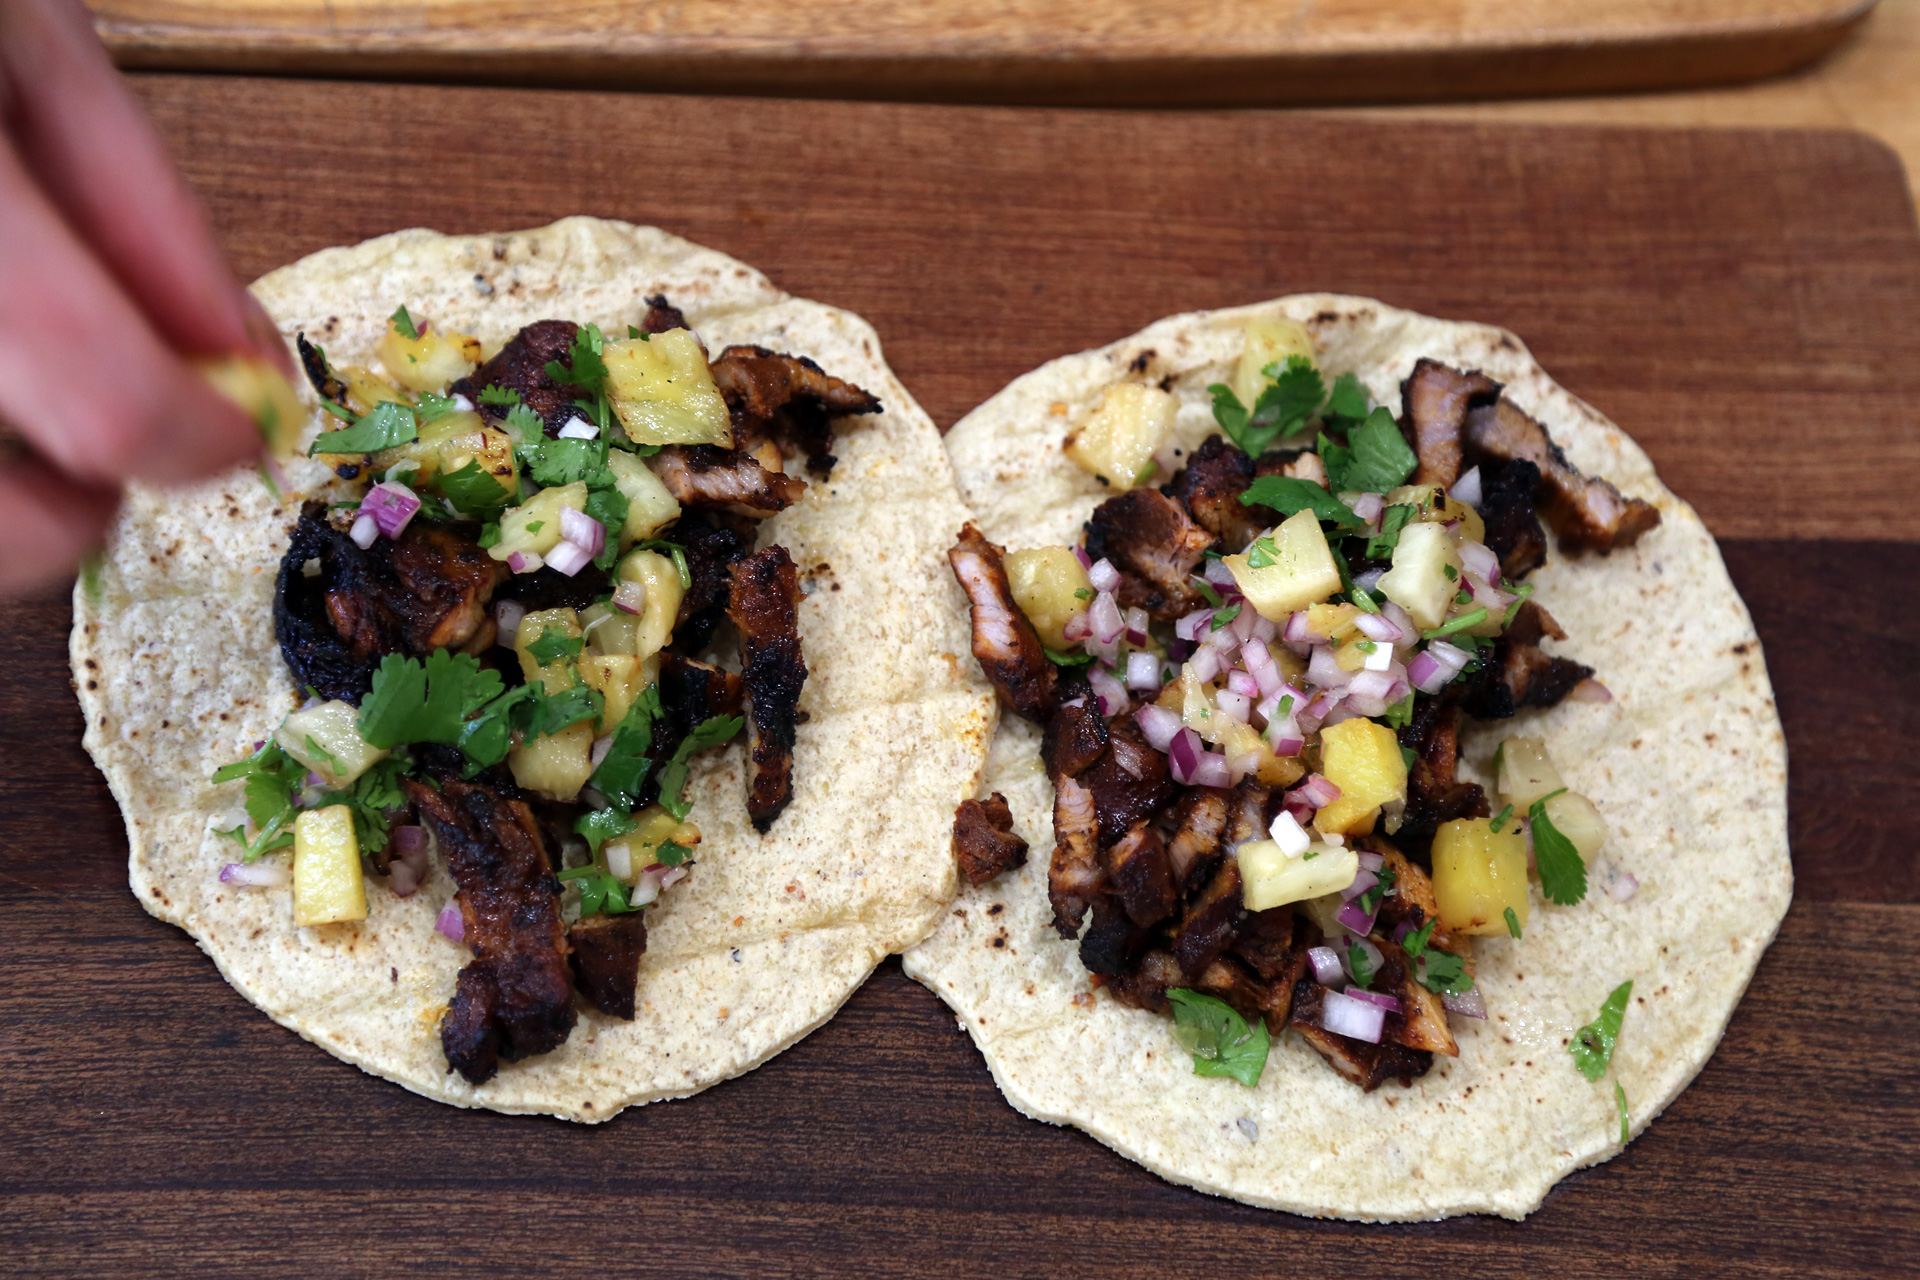 To assemble the tacos, heap some pork al pastor onto a tortilla, top with the pineapple mixture.